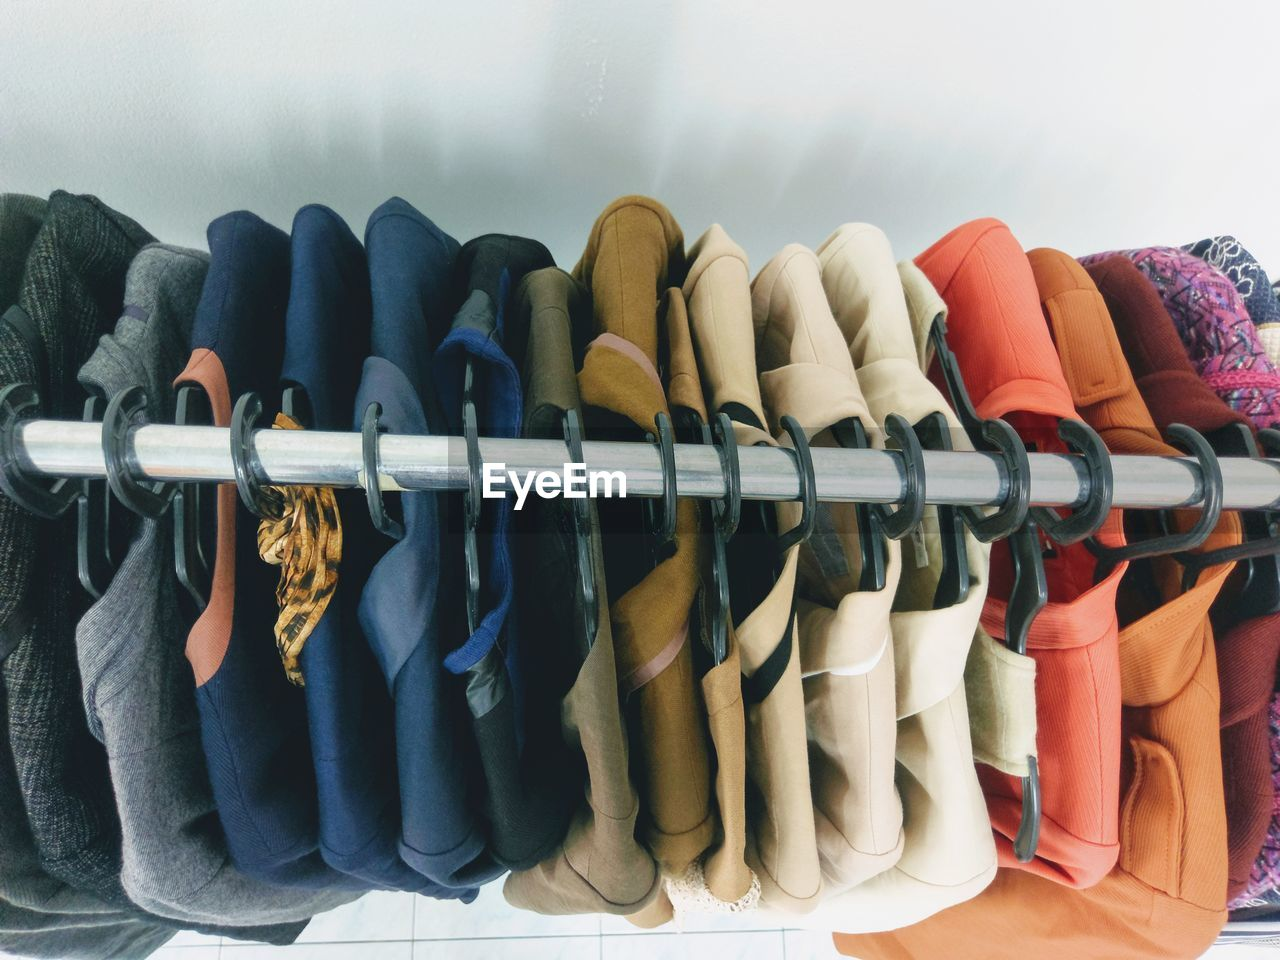 Suit tops on multiple sizes of hangers